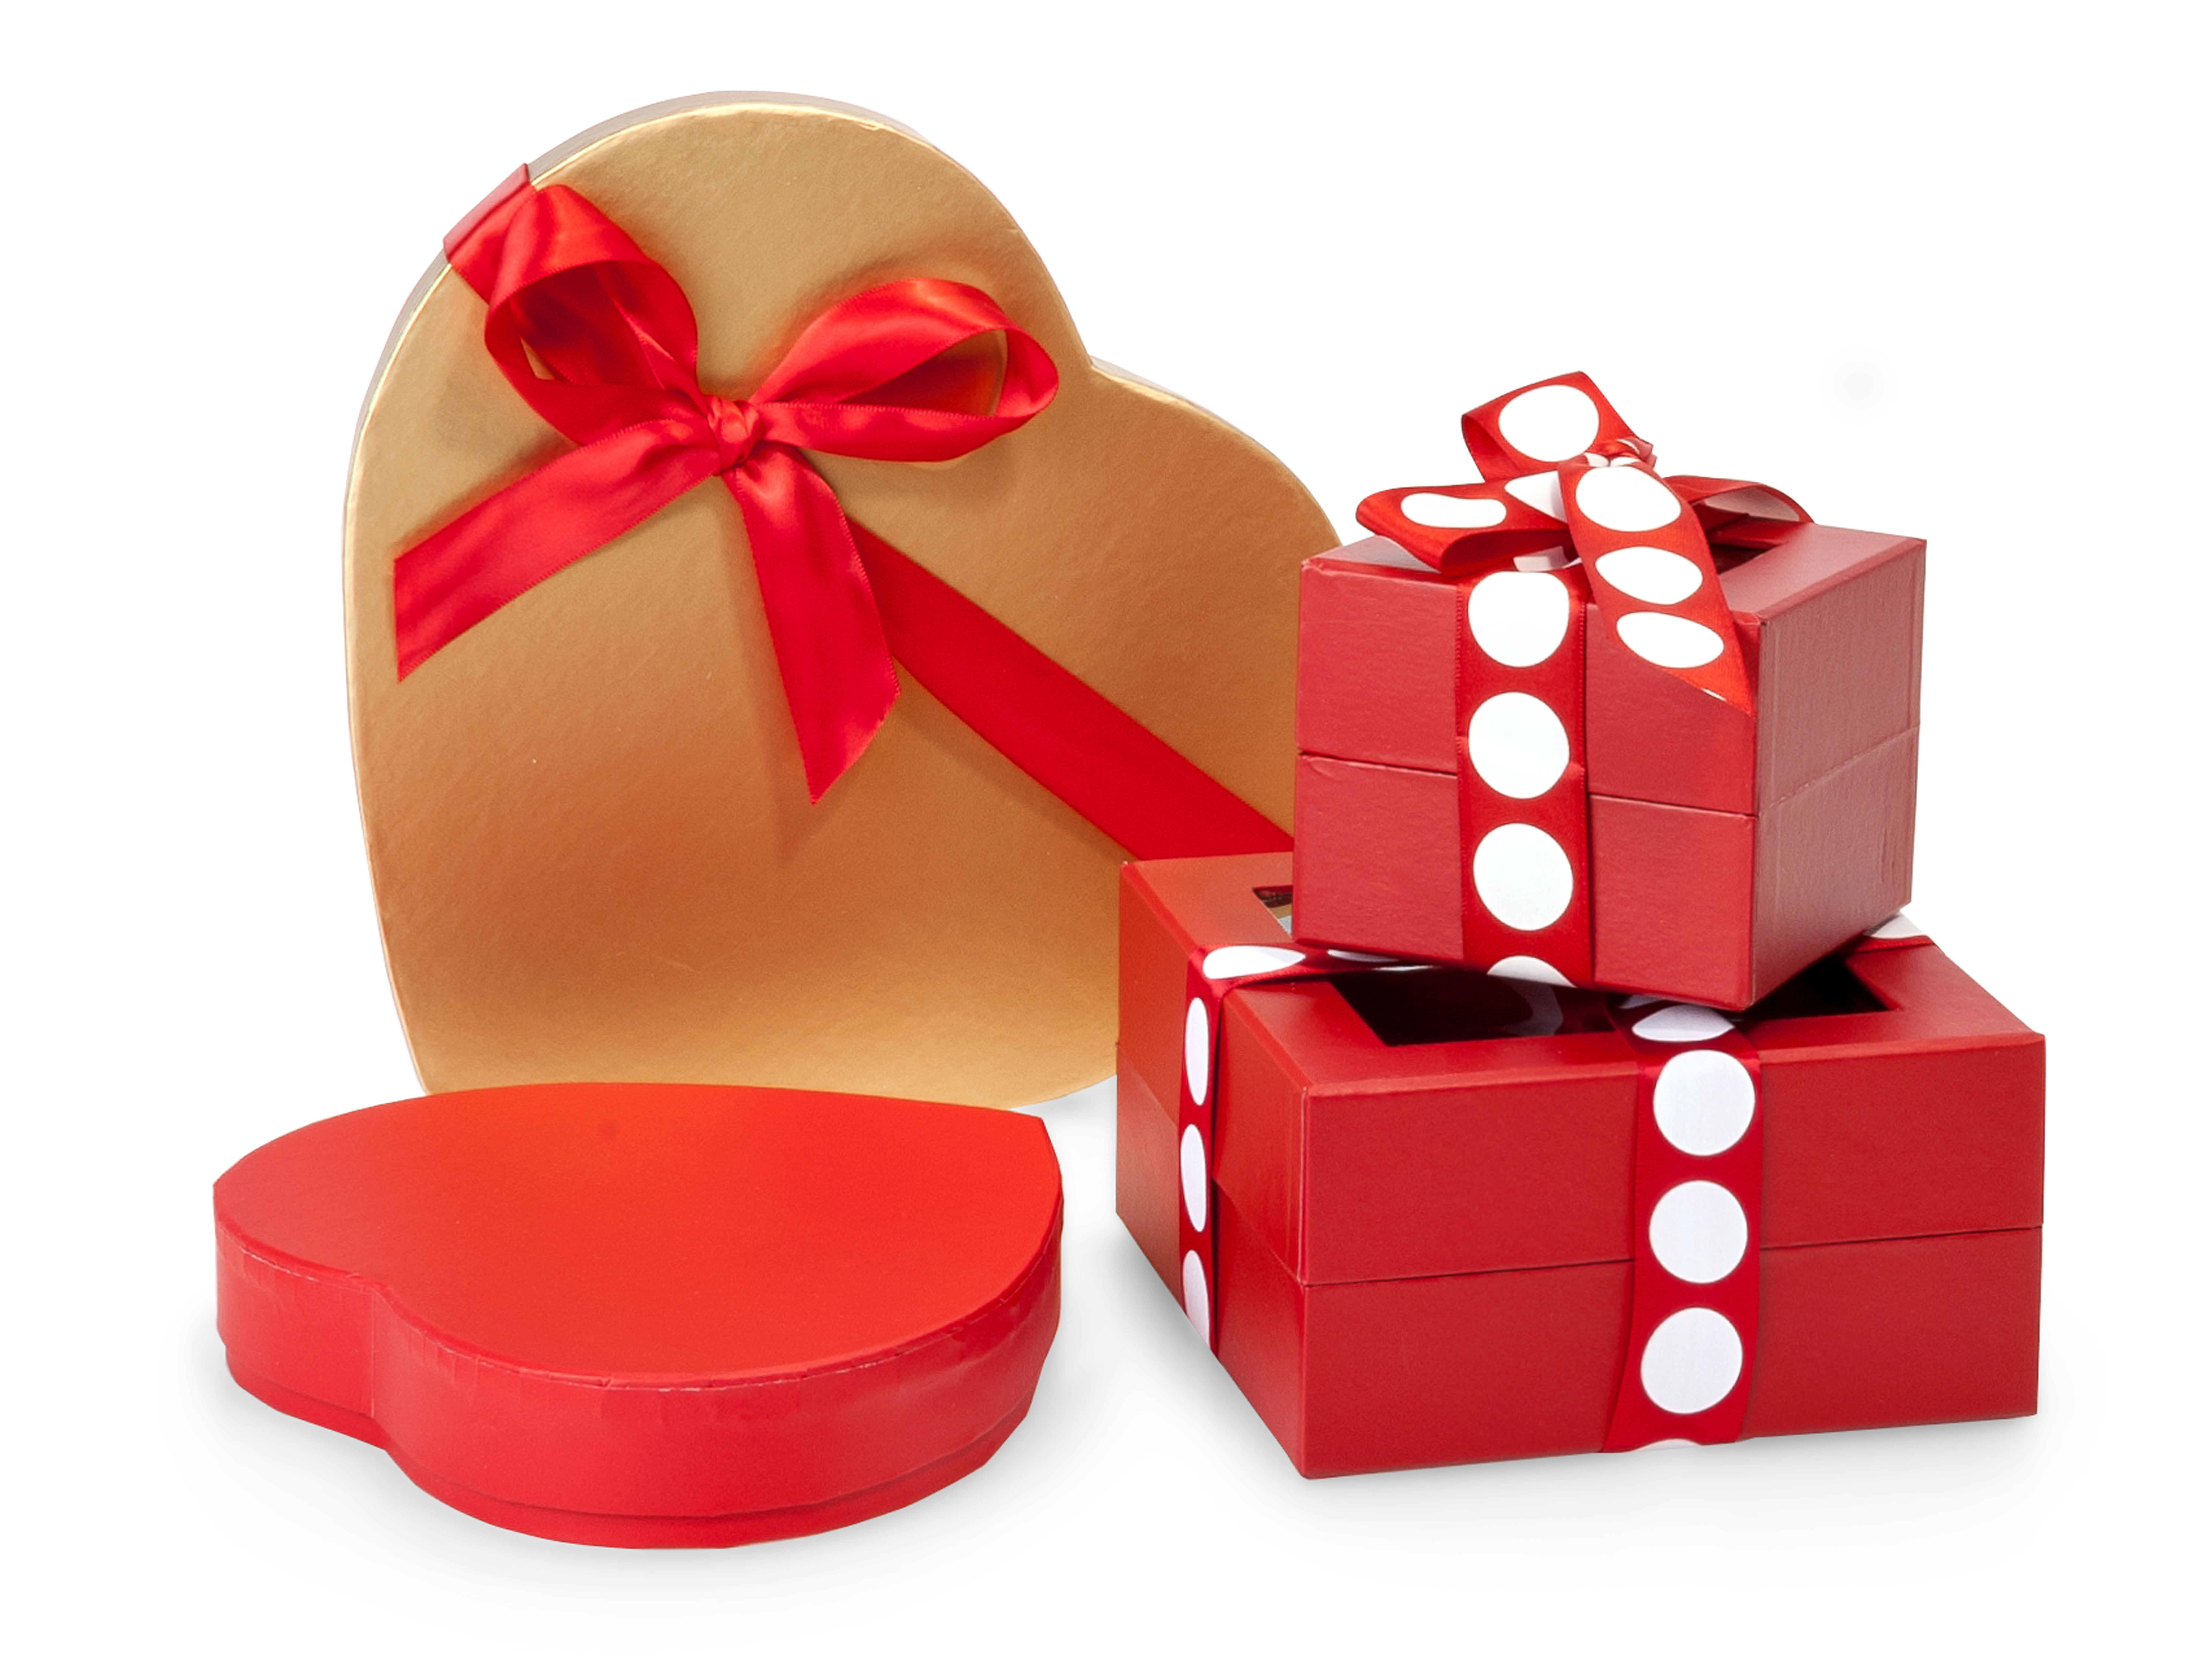 Wholesale Deals on Retail Packaging and Gift Wrapping Supplies ...